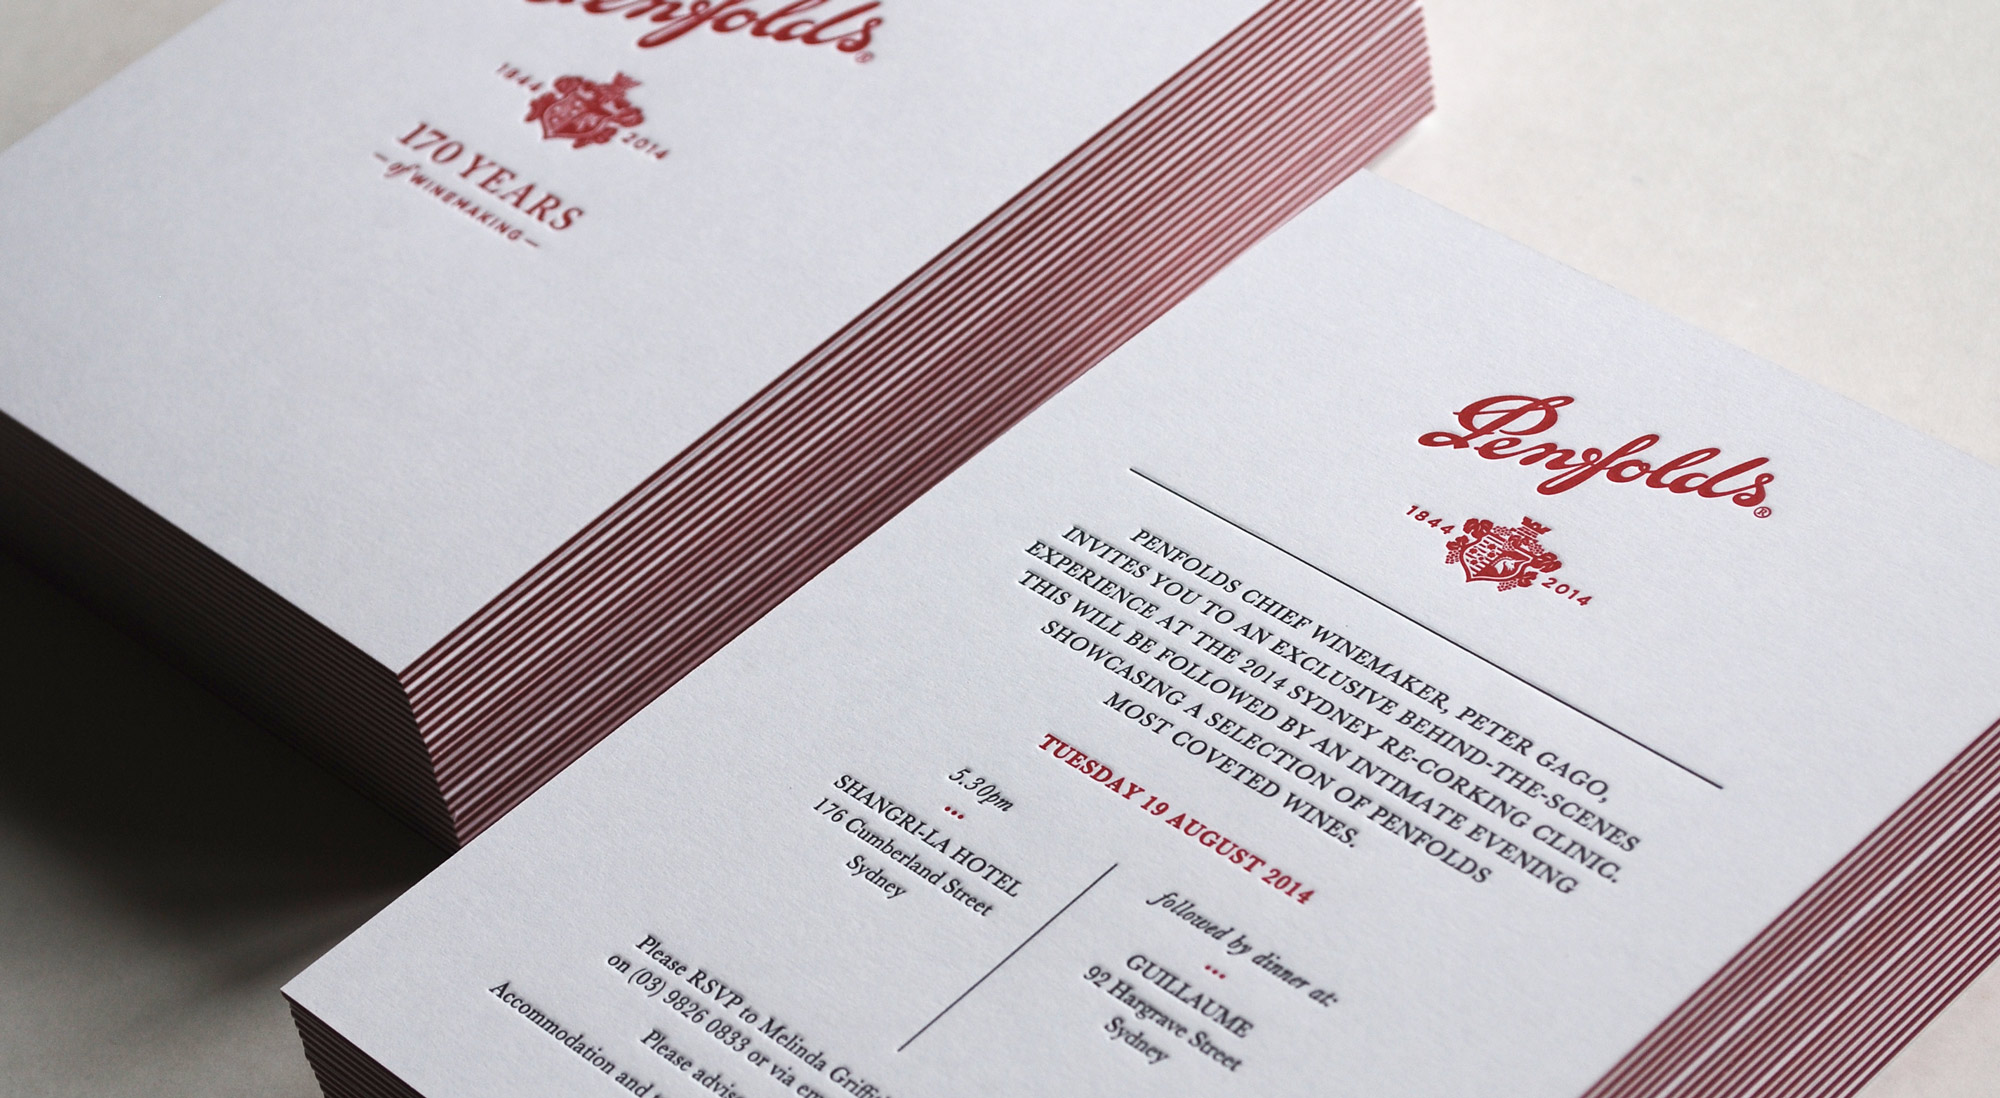 Penfolds - Re-corking Clinic letterpress print design